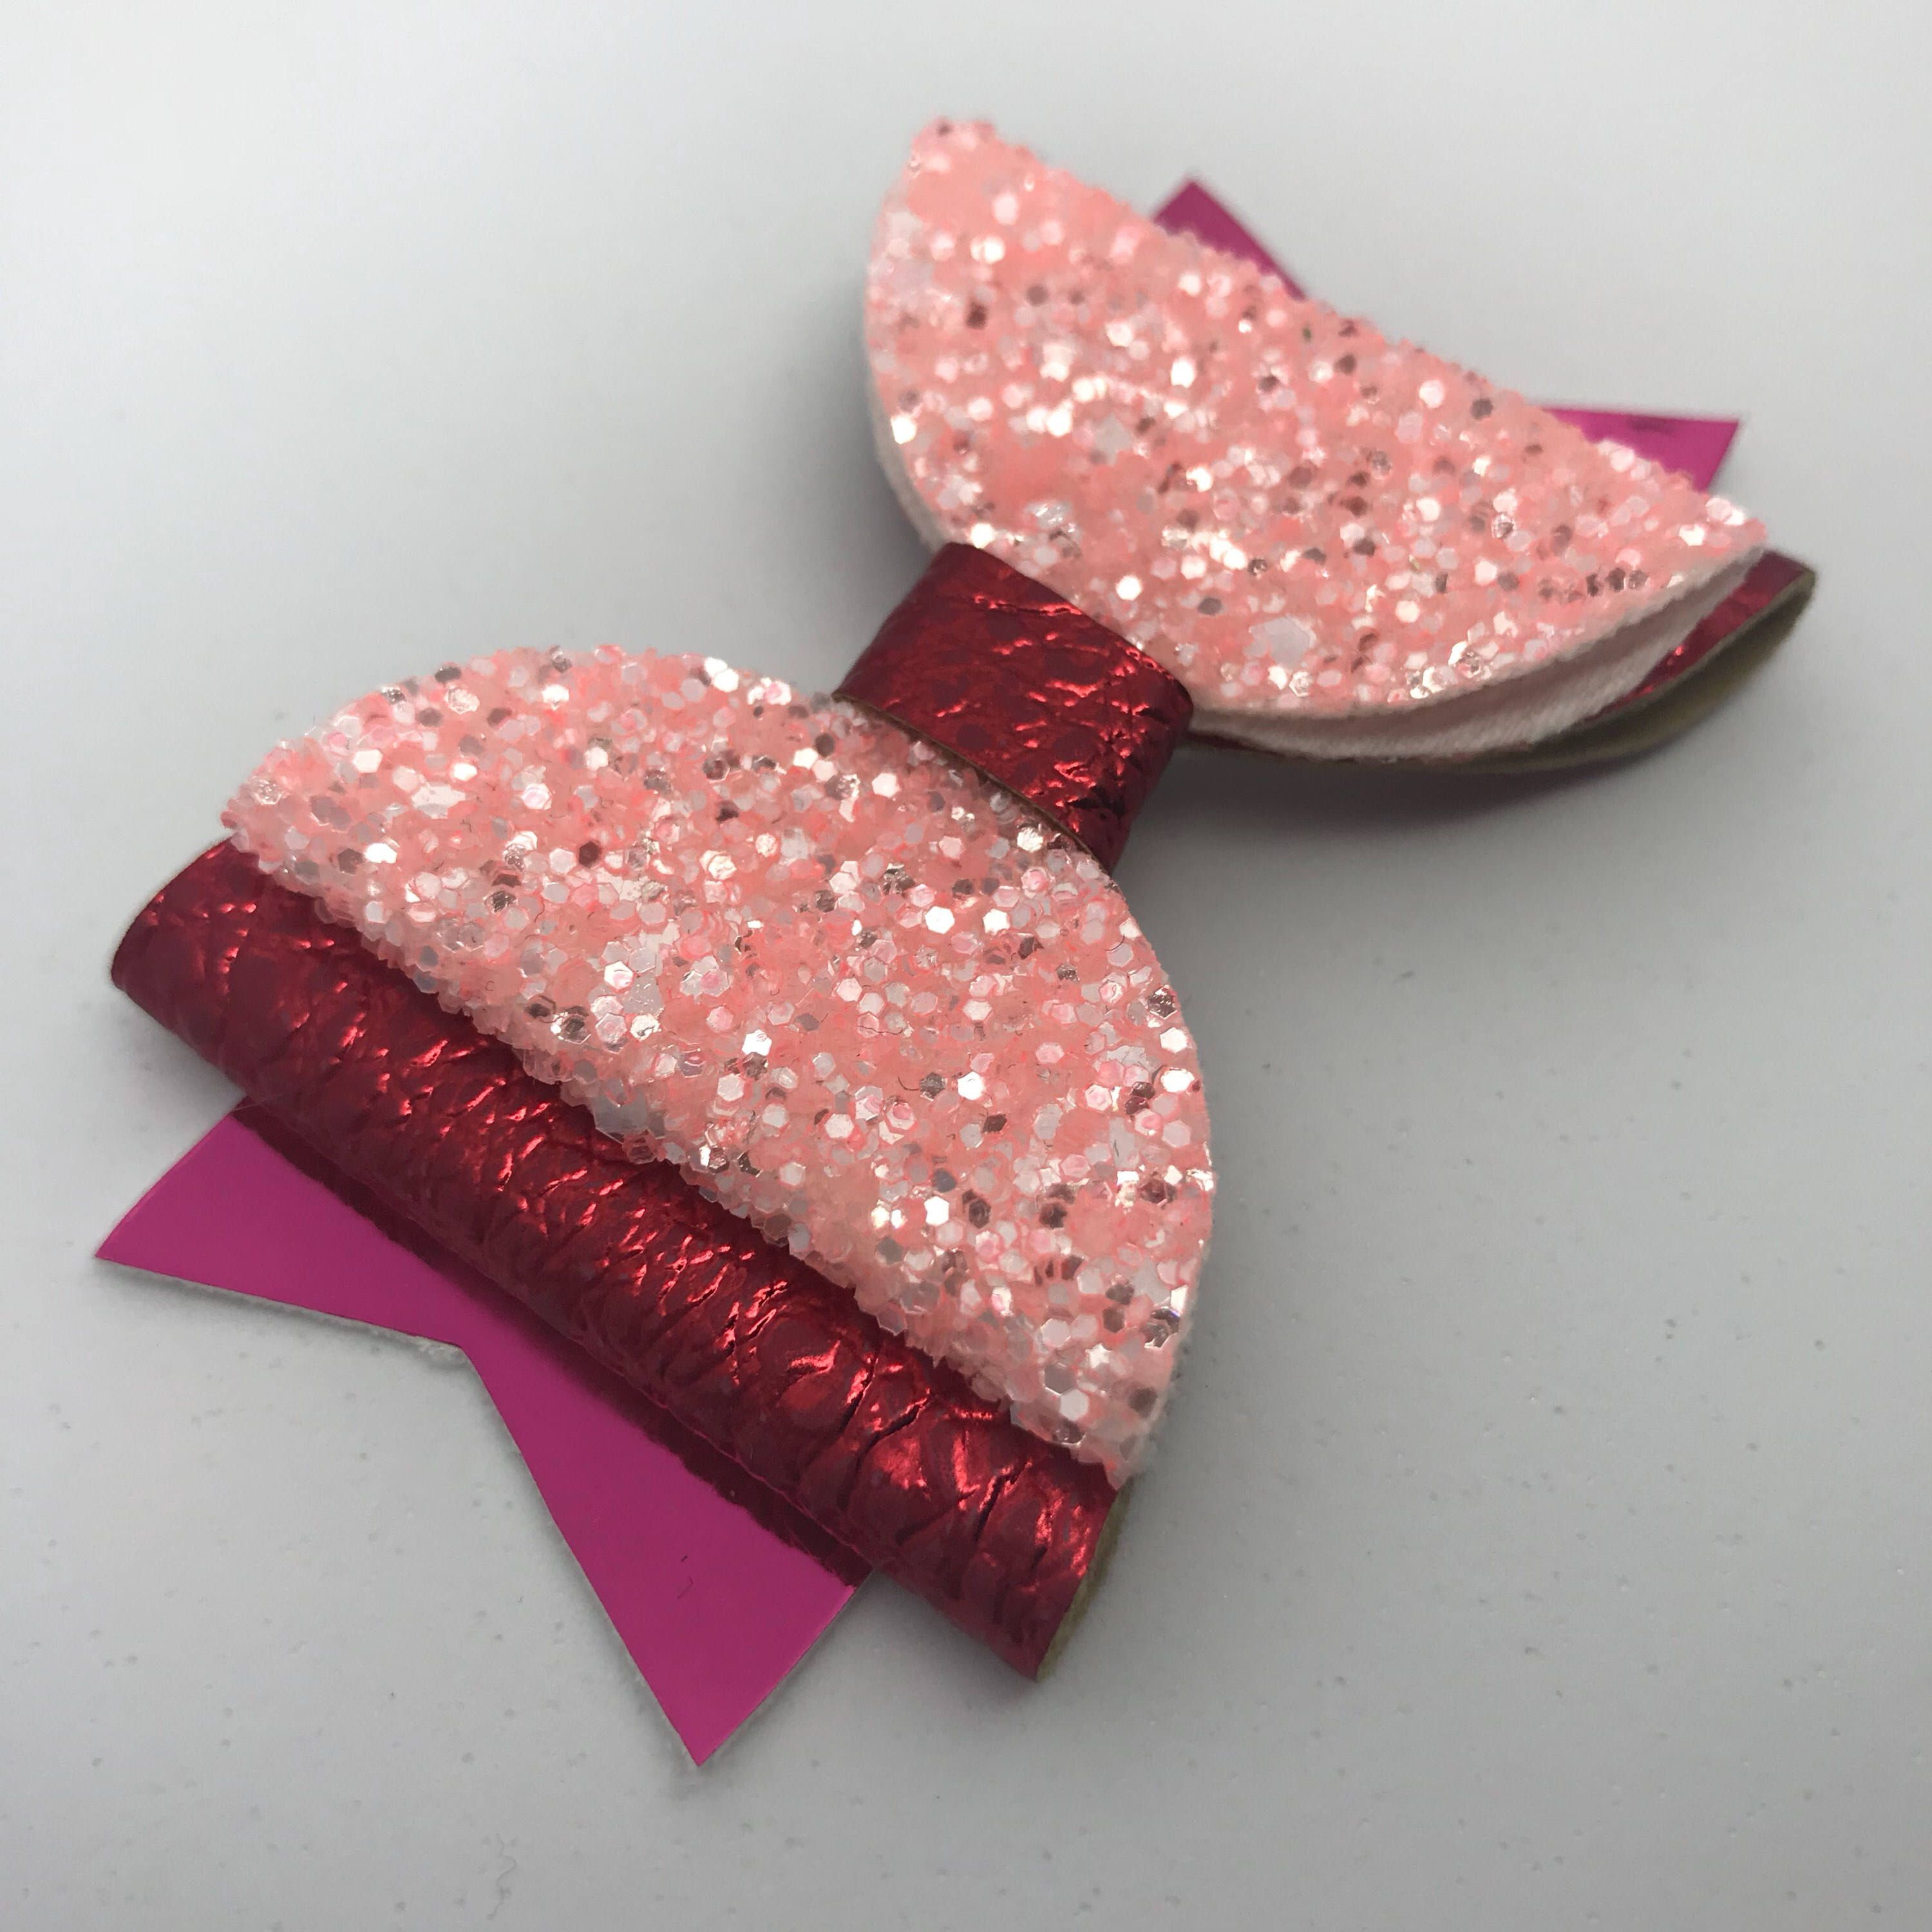 1 x Girls Handmade Little Mix Hair Bow Accessory on alligator clip approx 3.5/""